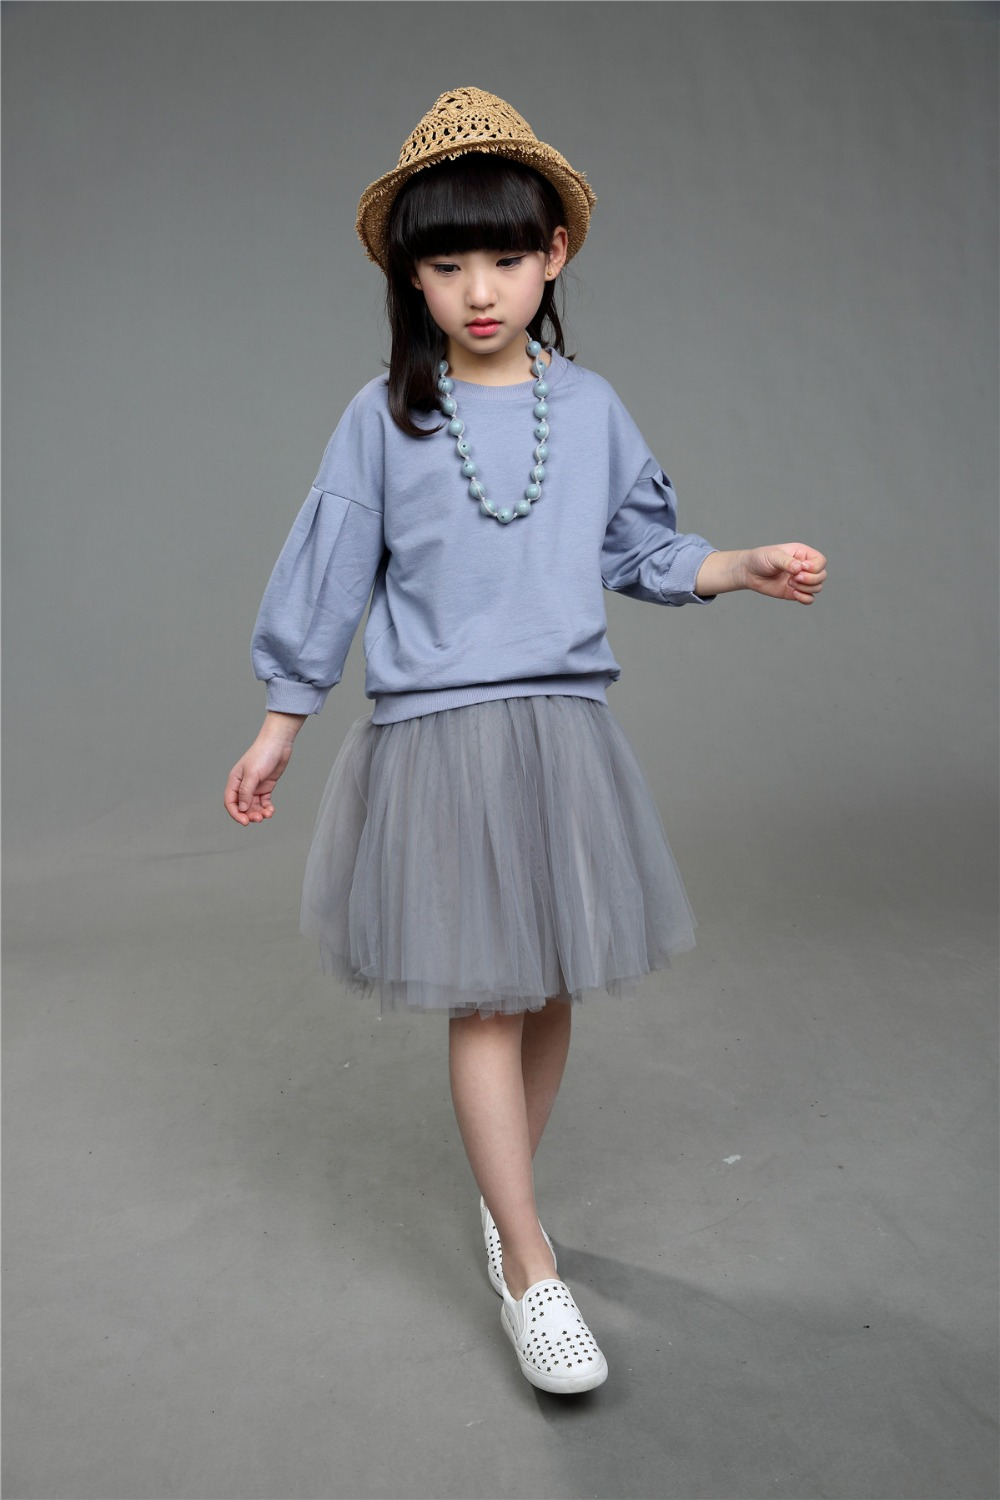 Toddler Girls Autumn Spring Clothing Sets Baby Solid Hoodies Coat Cotton Children Voile Princess Skirts 2PCS 5sets/LOT<br><br>Aliexpress